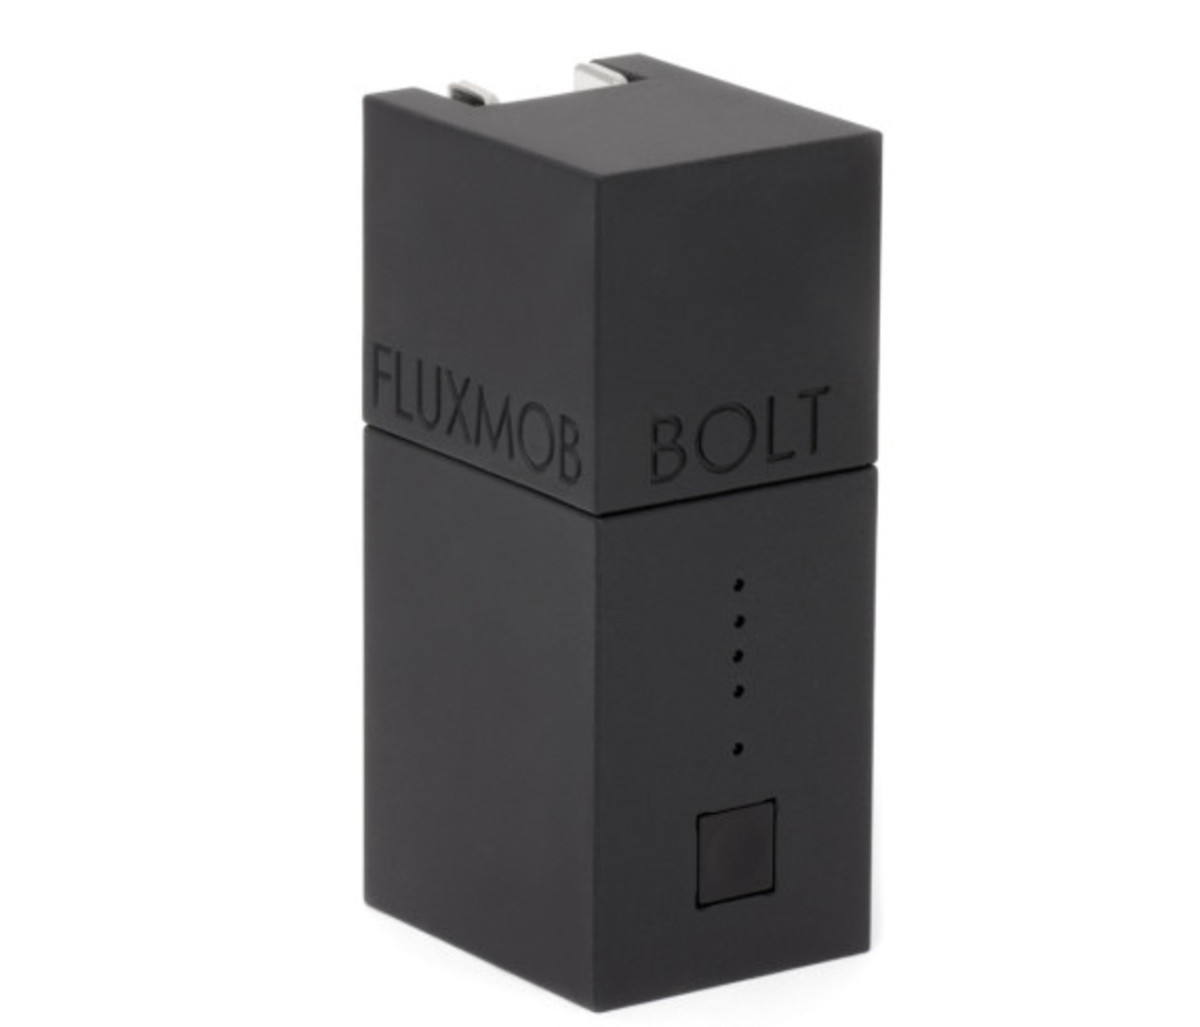 bolt-usb-battery-pack-with-built-in-wall-charger-07